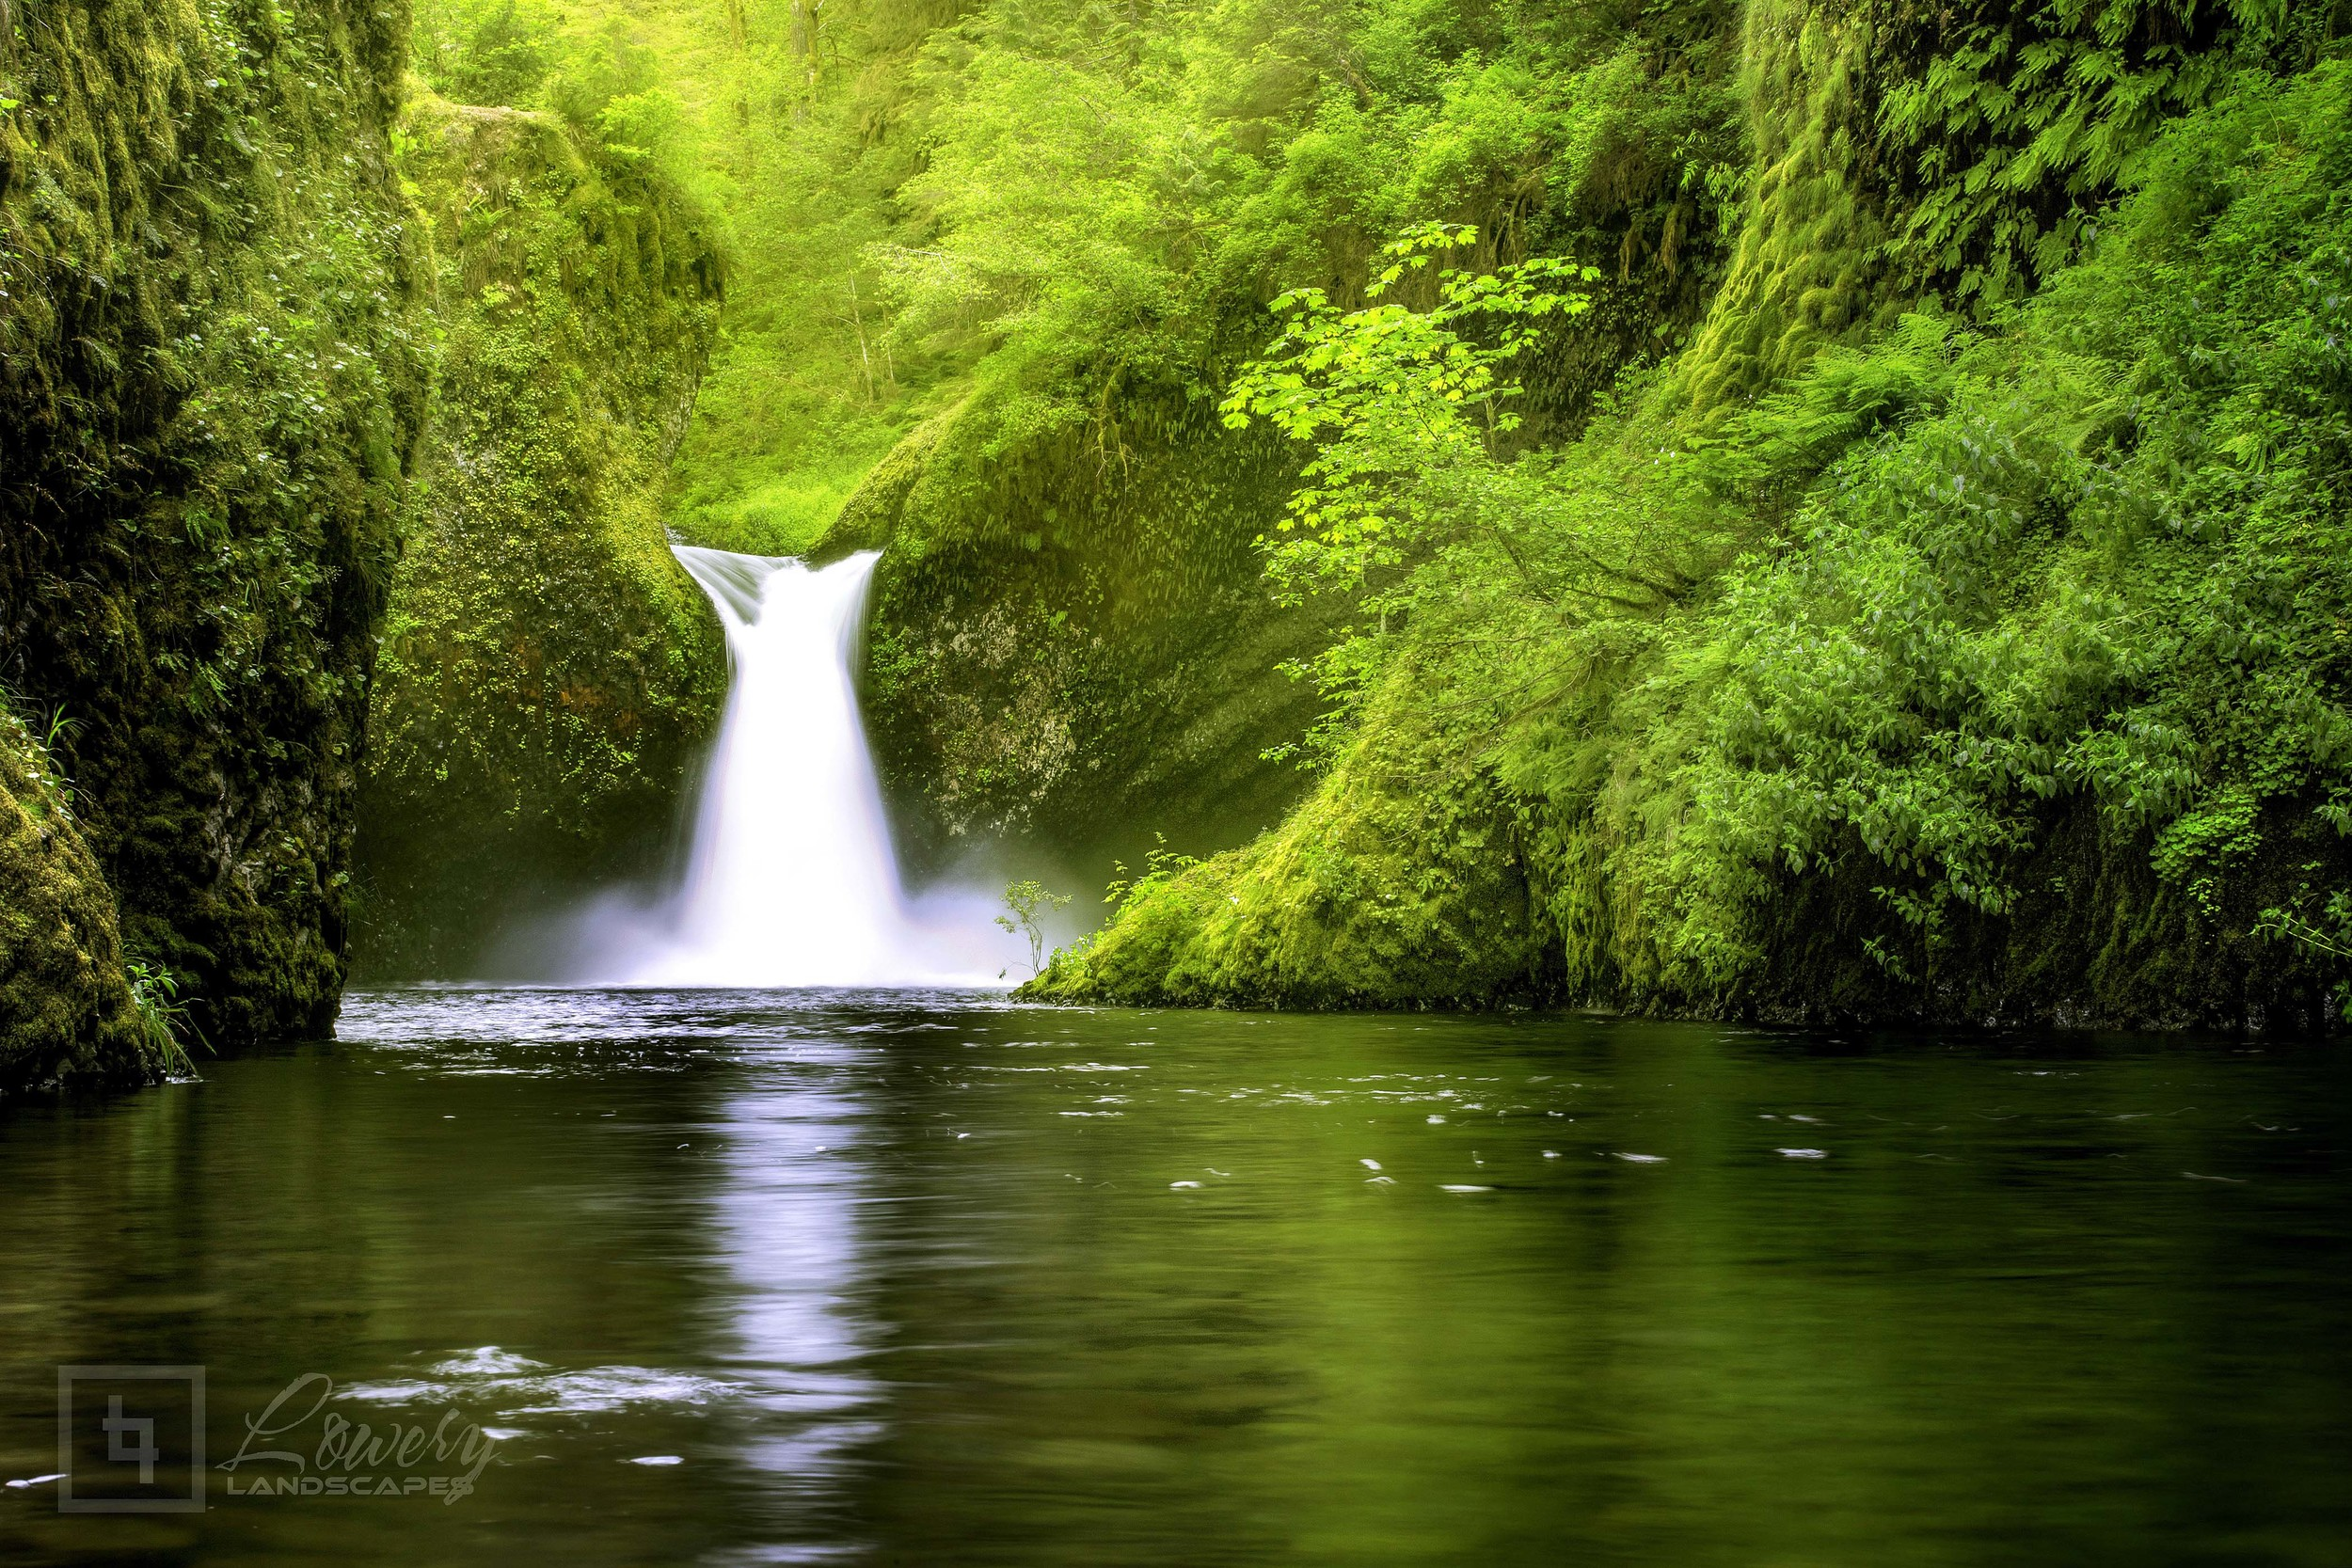 Punchbowl Falls may look small, but it plunges about 50 feet over this single vortex-like cascade into a beautiful but tumultuous splash pool.